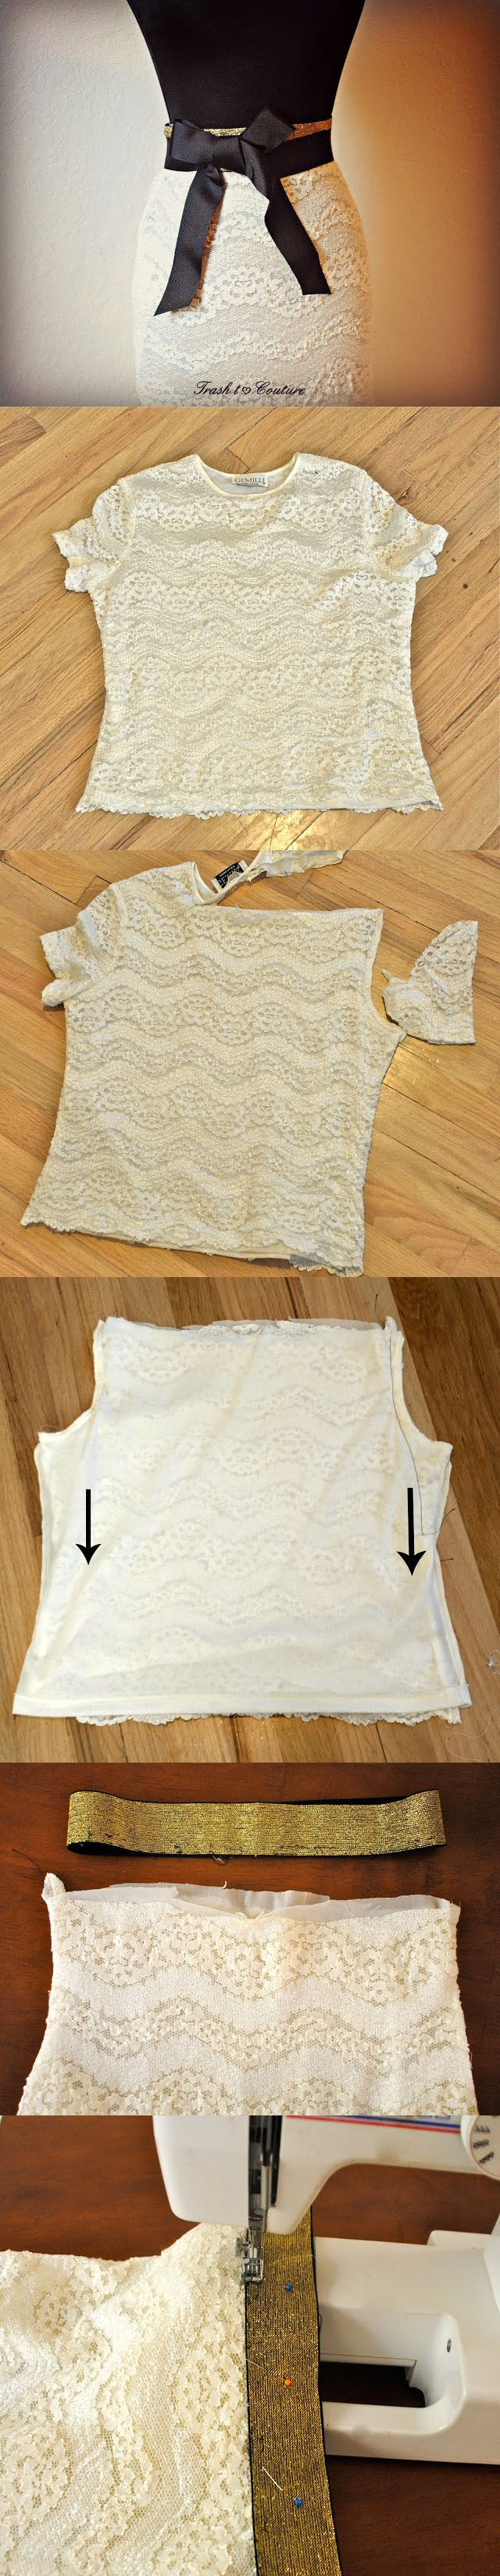 DIY IDEAS: Put the Fashion In Your Closet Hello! I will be doing this this weekend. Daily update on my blog: ediy3.com